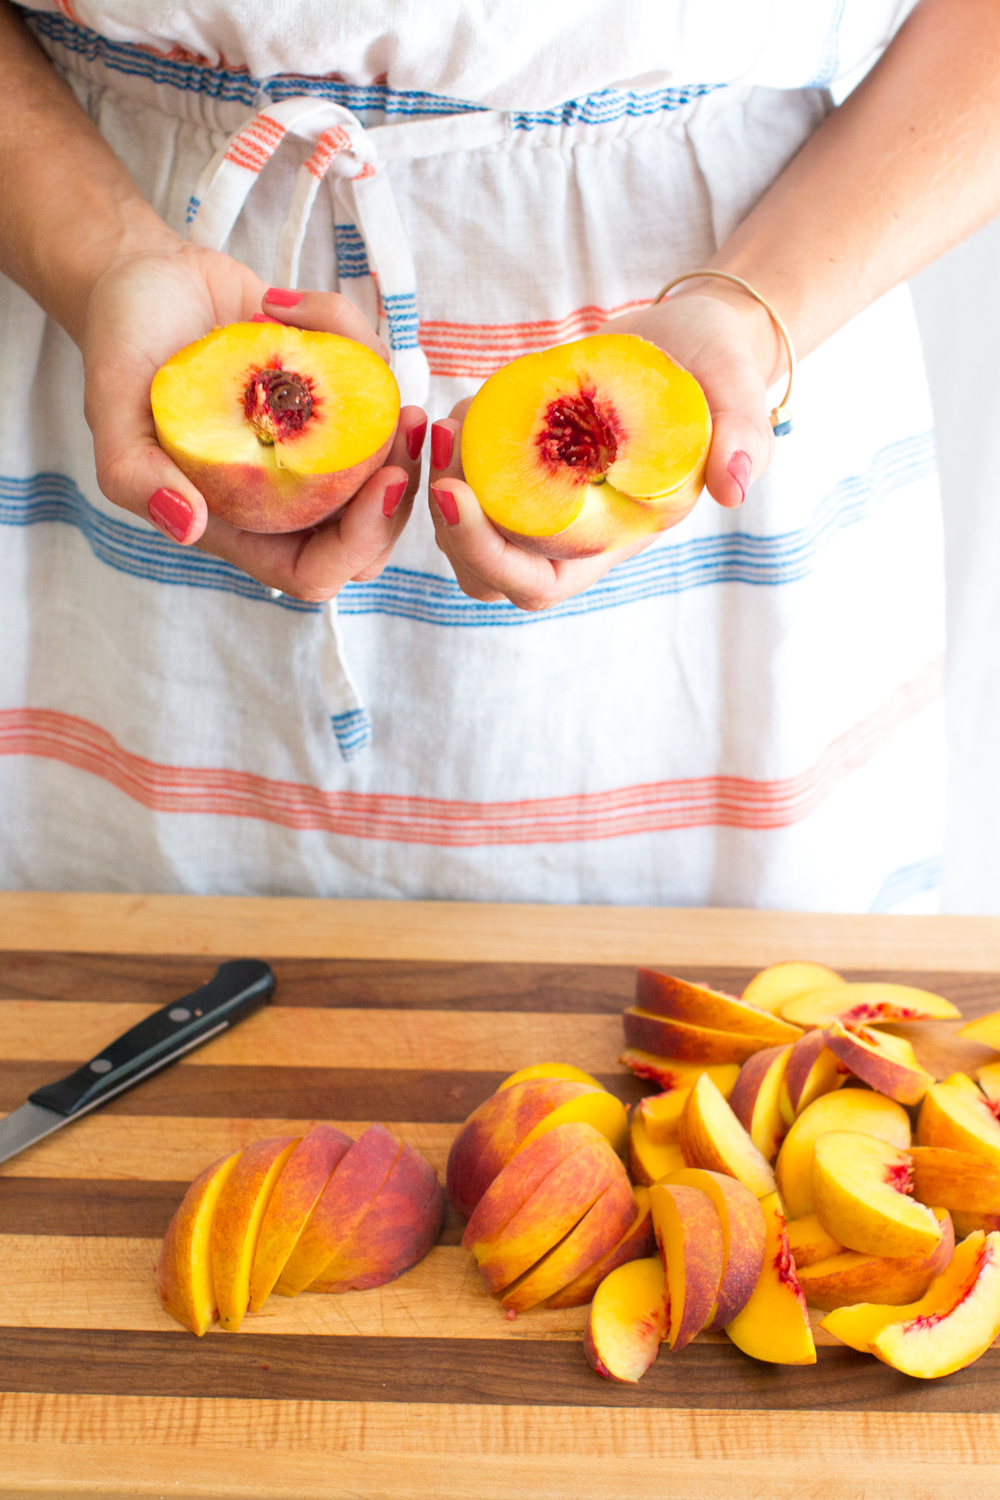 Halve, pit and slice the peaches